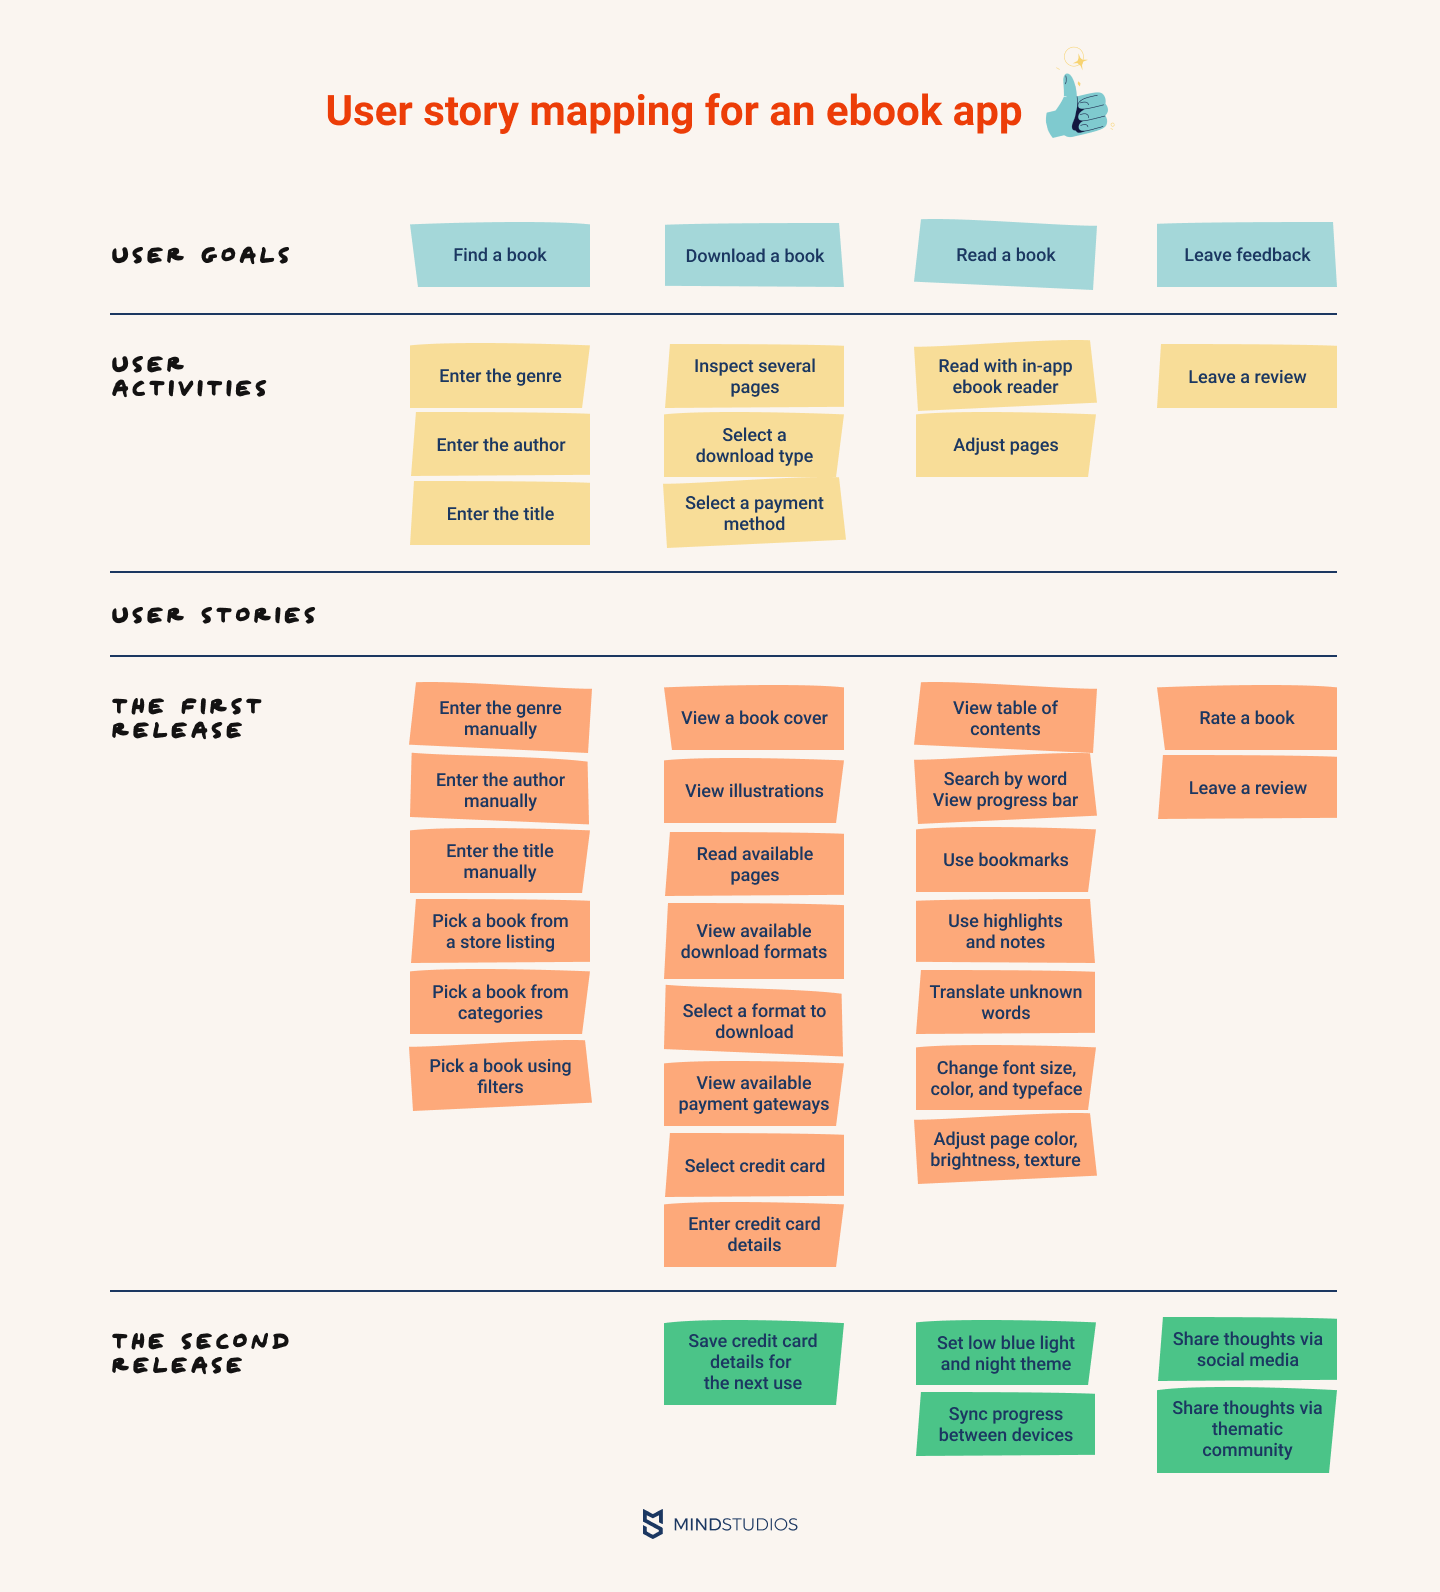 User story mapping for an ebook app